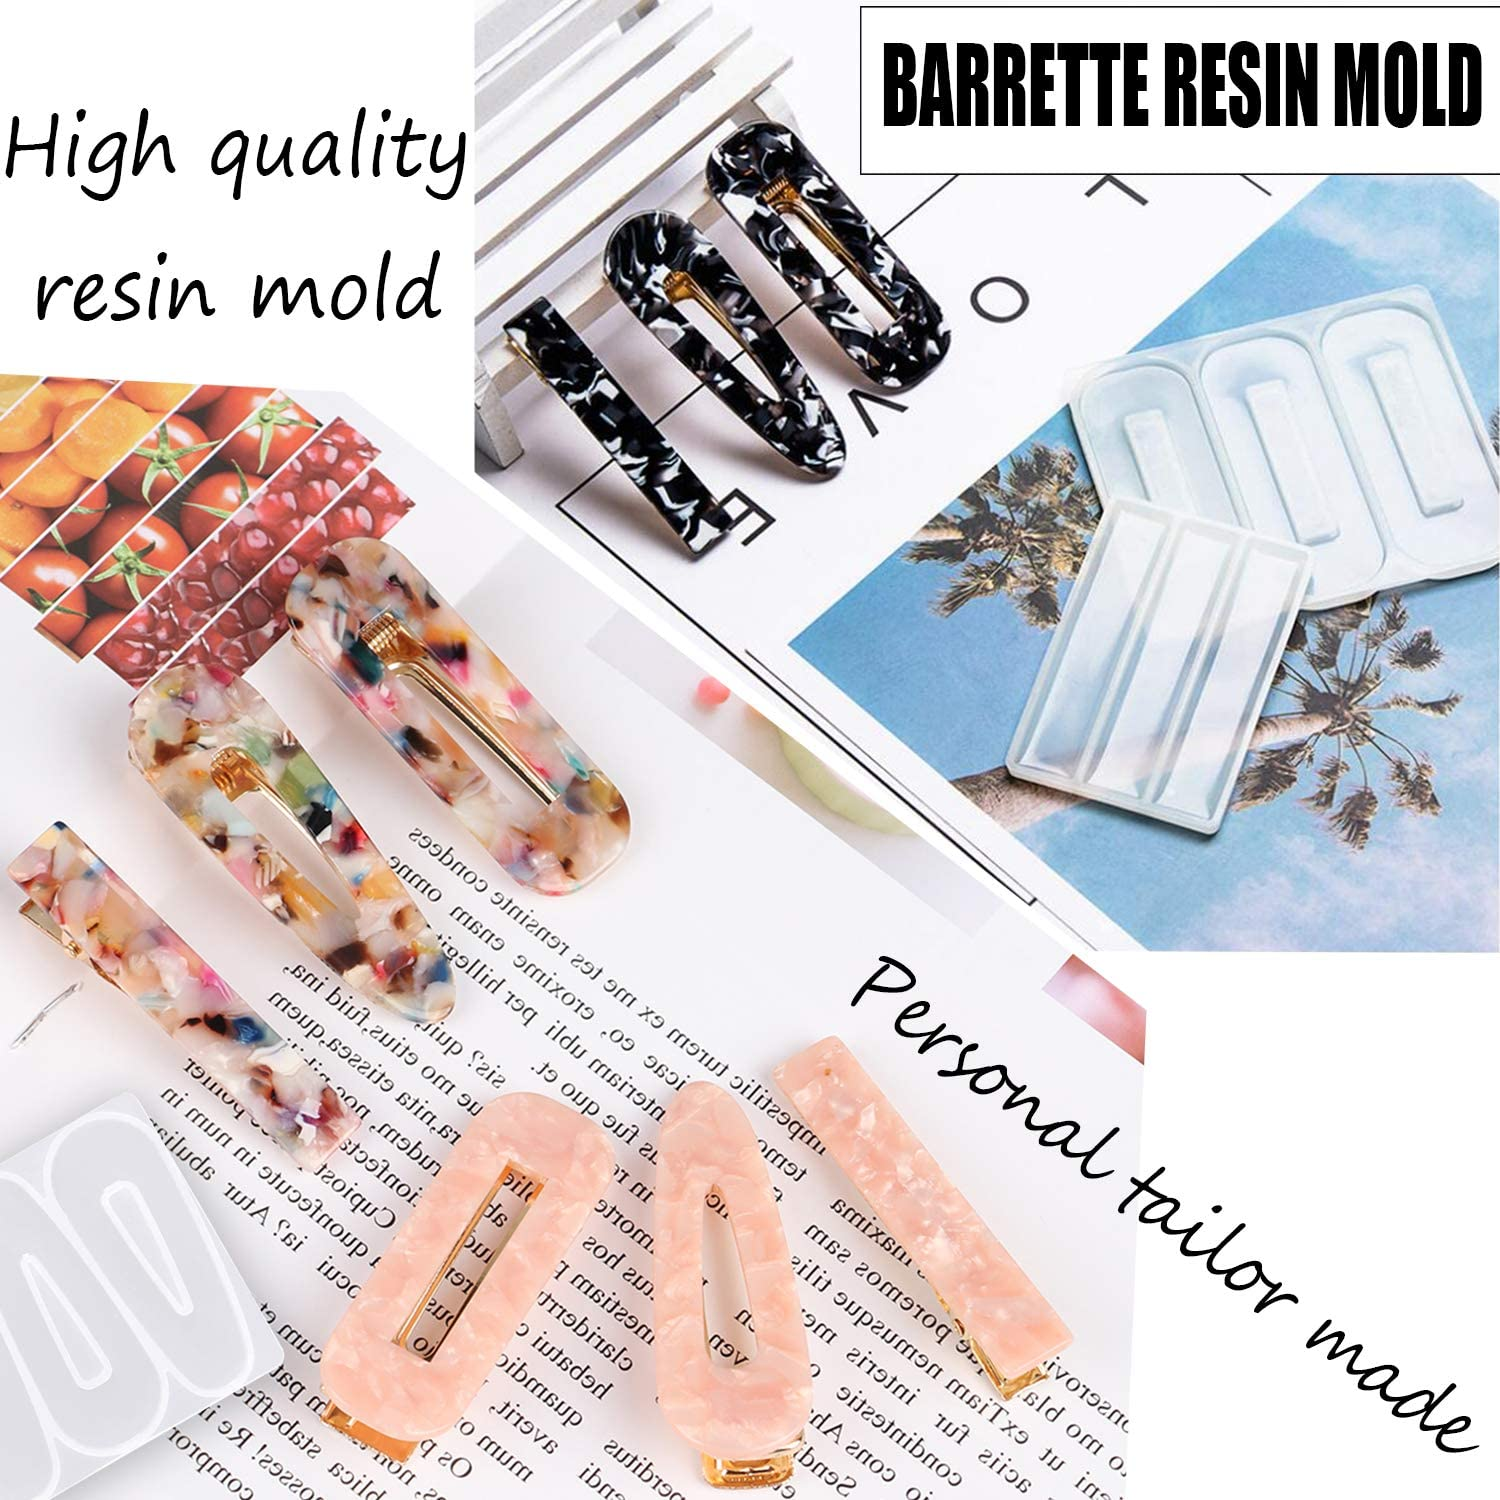 Hair Clip Silicone Molds Jewelry Molds for Epoxy Resin 30PCS Silicone Resin Molds DIY Hair Pin Jewelry Casting Mold for Hair Pin Pendant Making